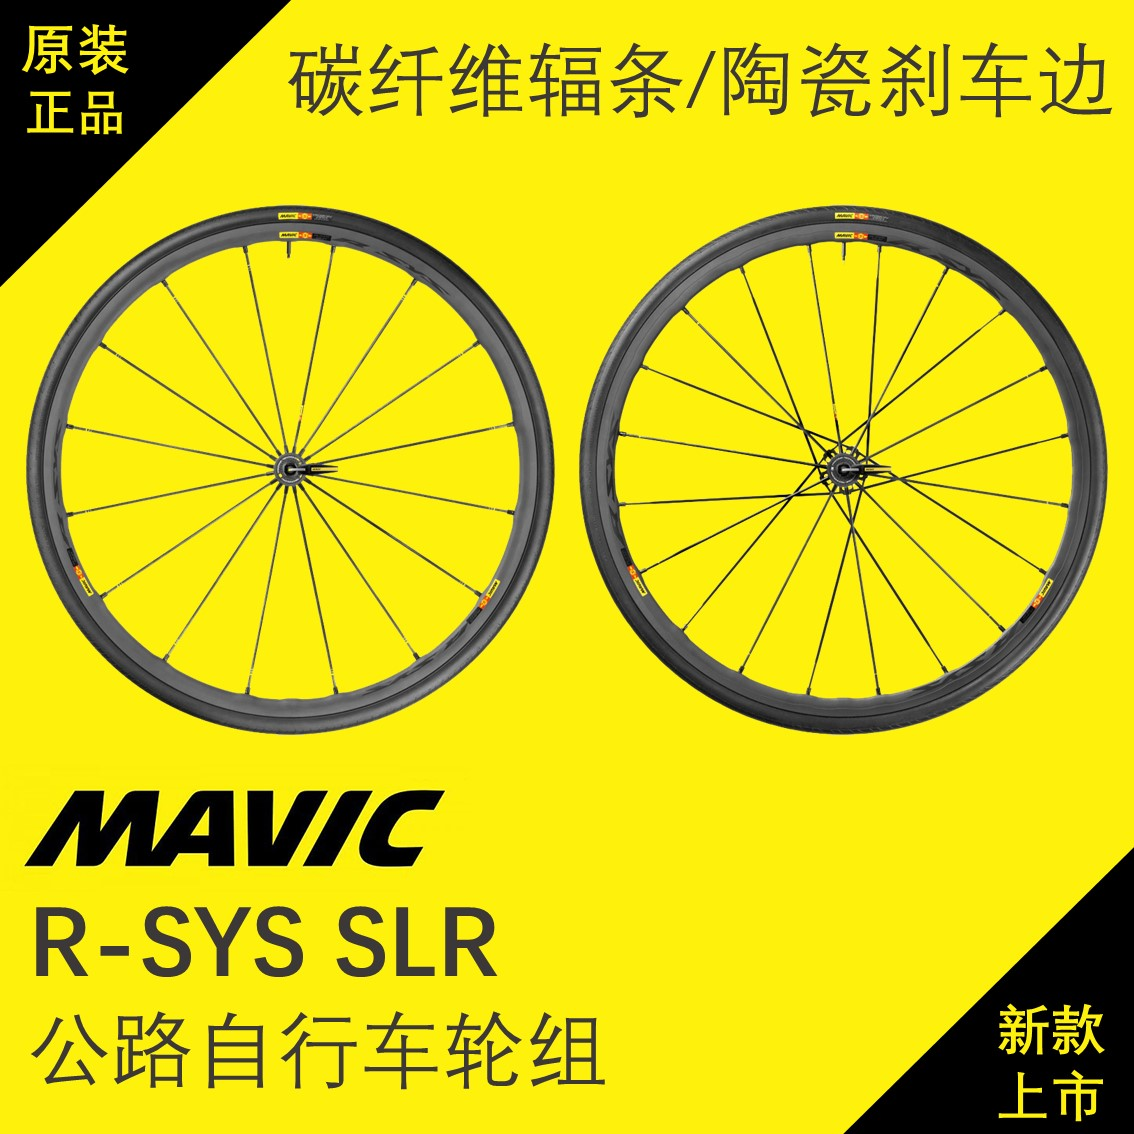 Limited Edition of Carbon Fiber Spoke Climbing Wheel Set for Mavic r-sys SLR Highway Bicycle